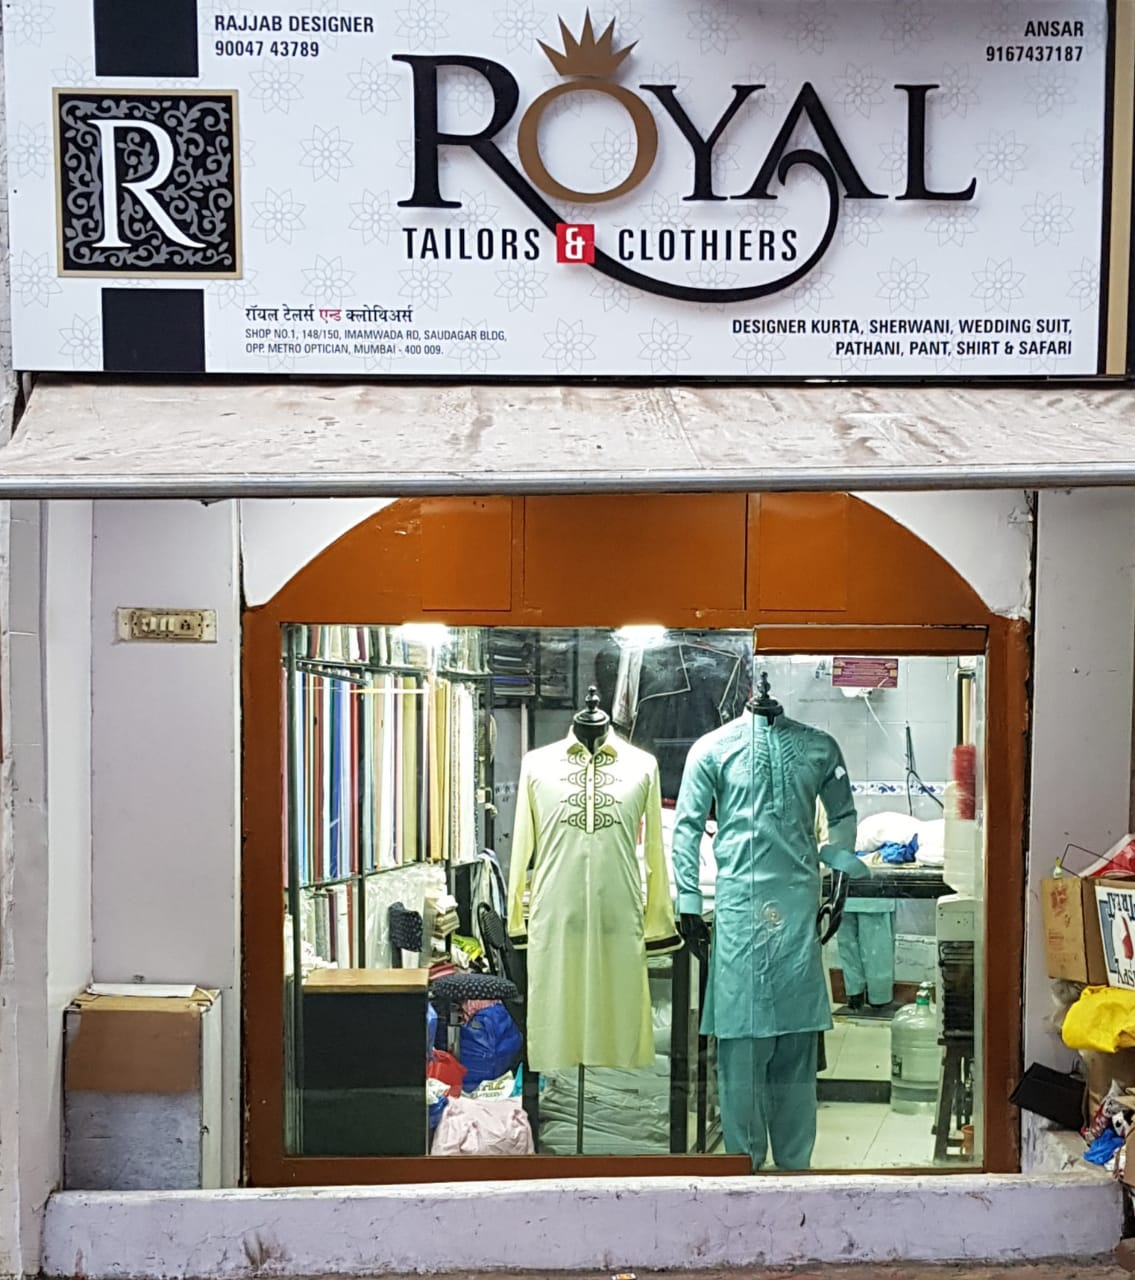 Royal Tailors & Clothiers